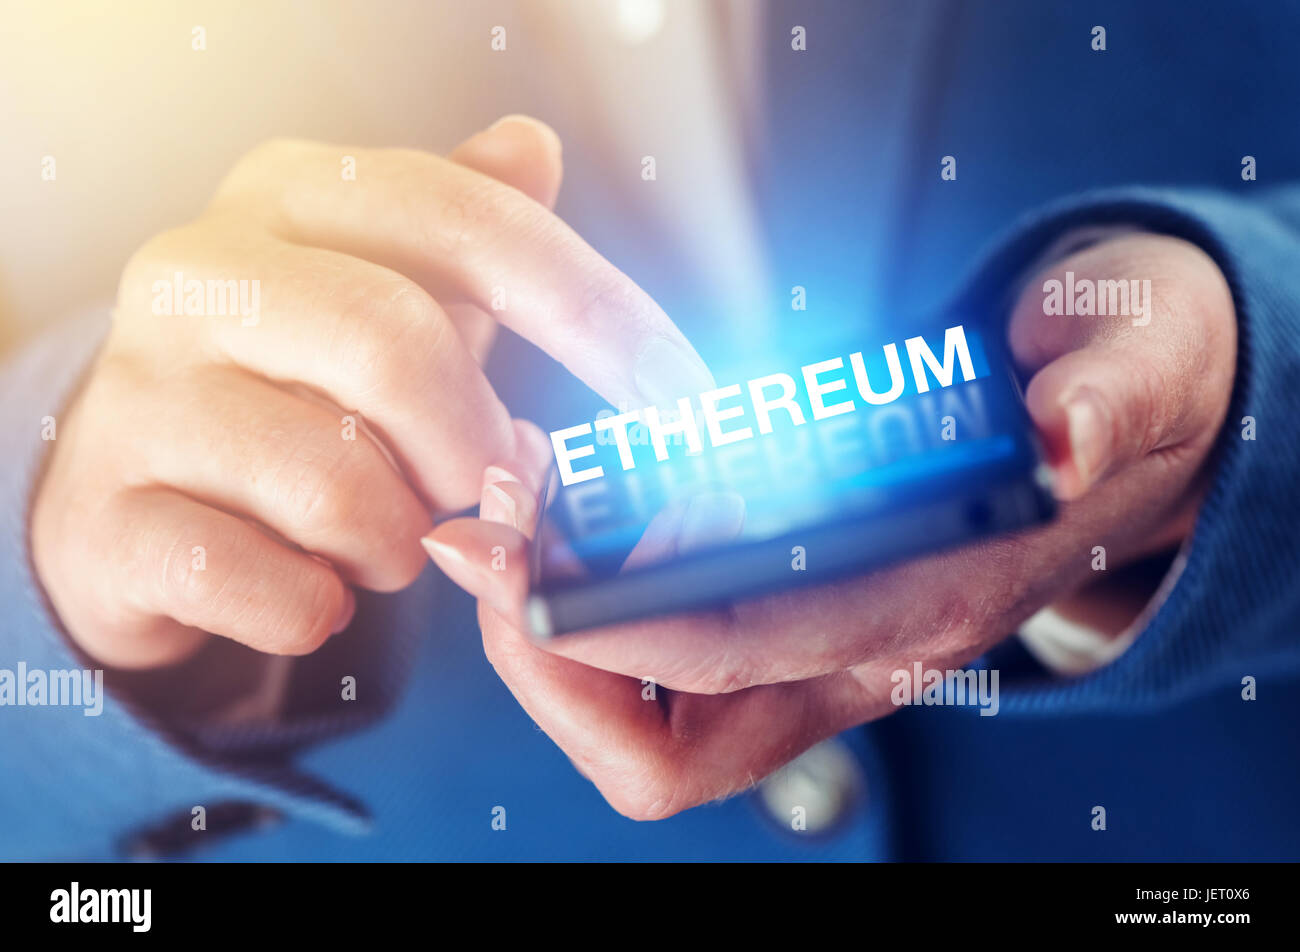 Ethereum cryptocurrency concept with female hands and smartphone - Stock Image